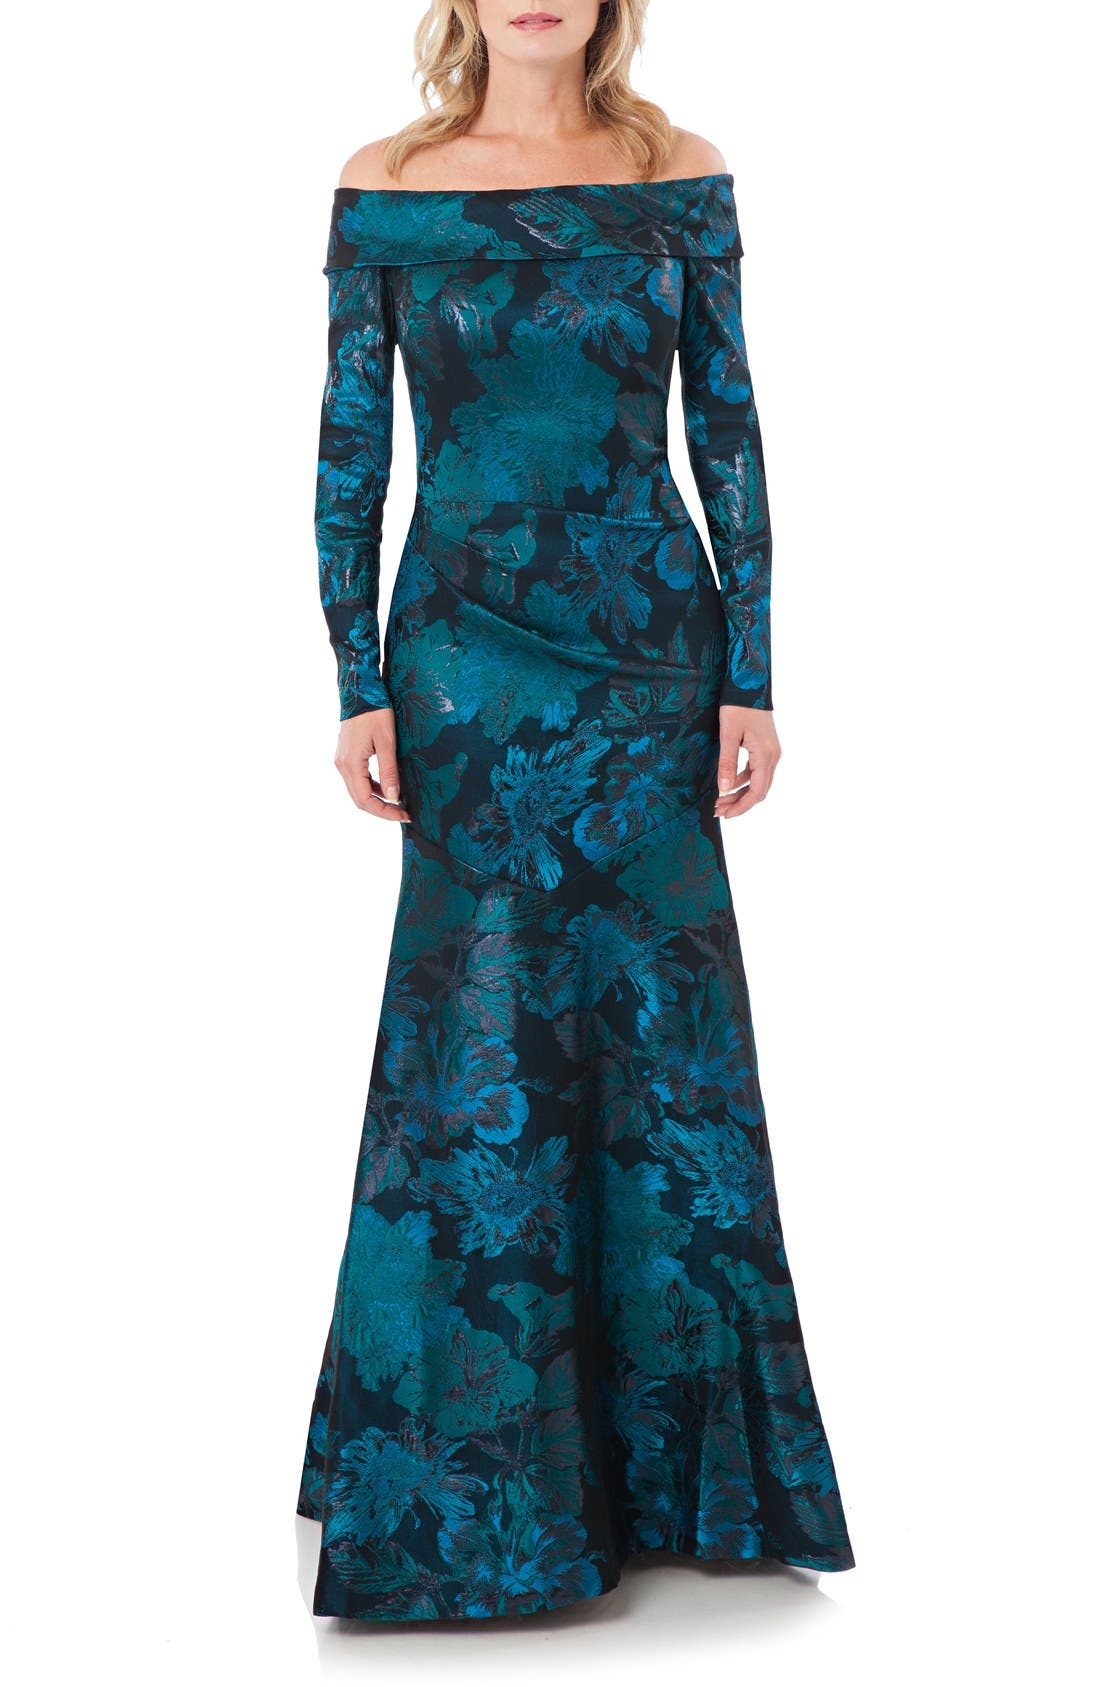 Main Image - Theia Metallic Floral Jacquard Mermaid Gown